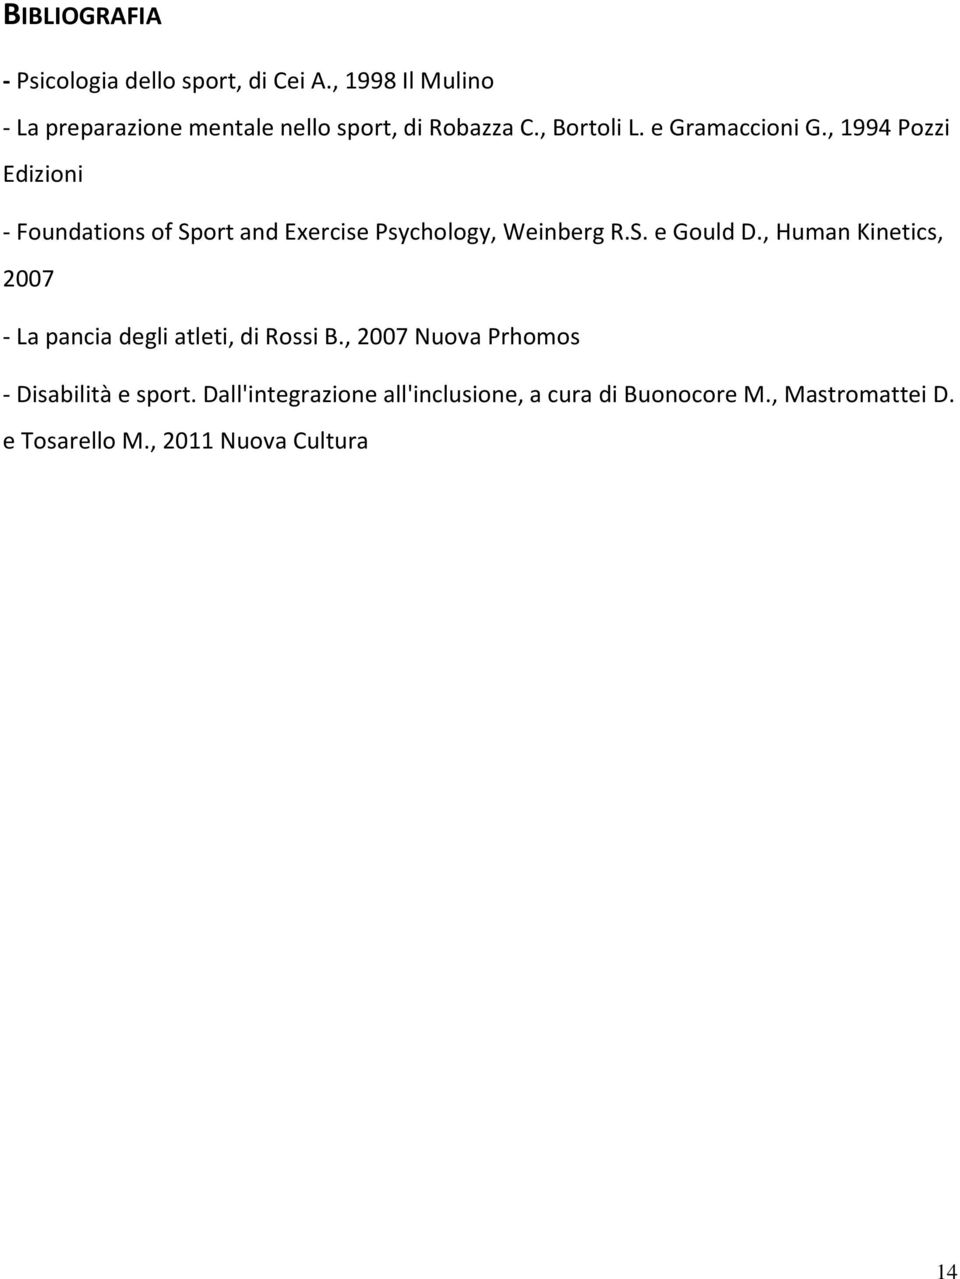 journal of sport and exercise psychology pdf